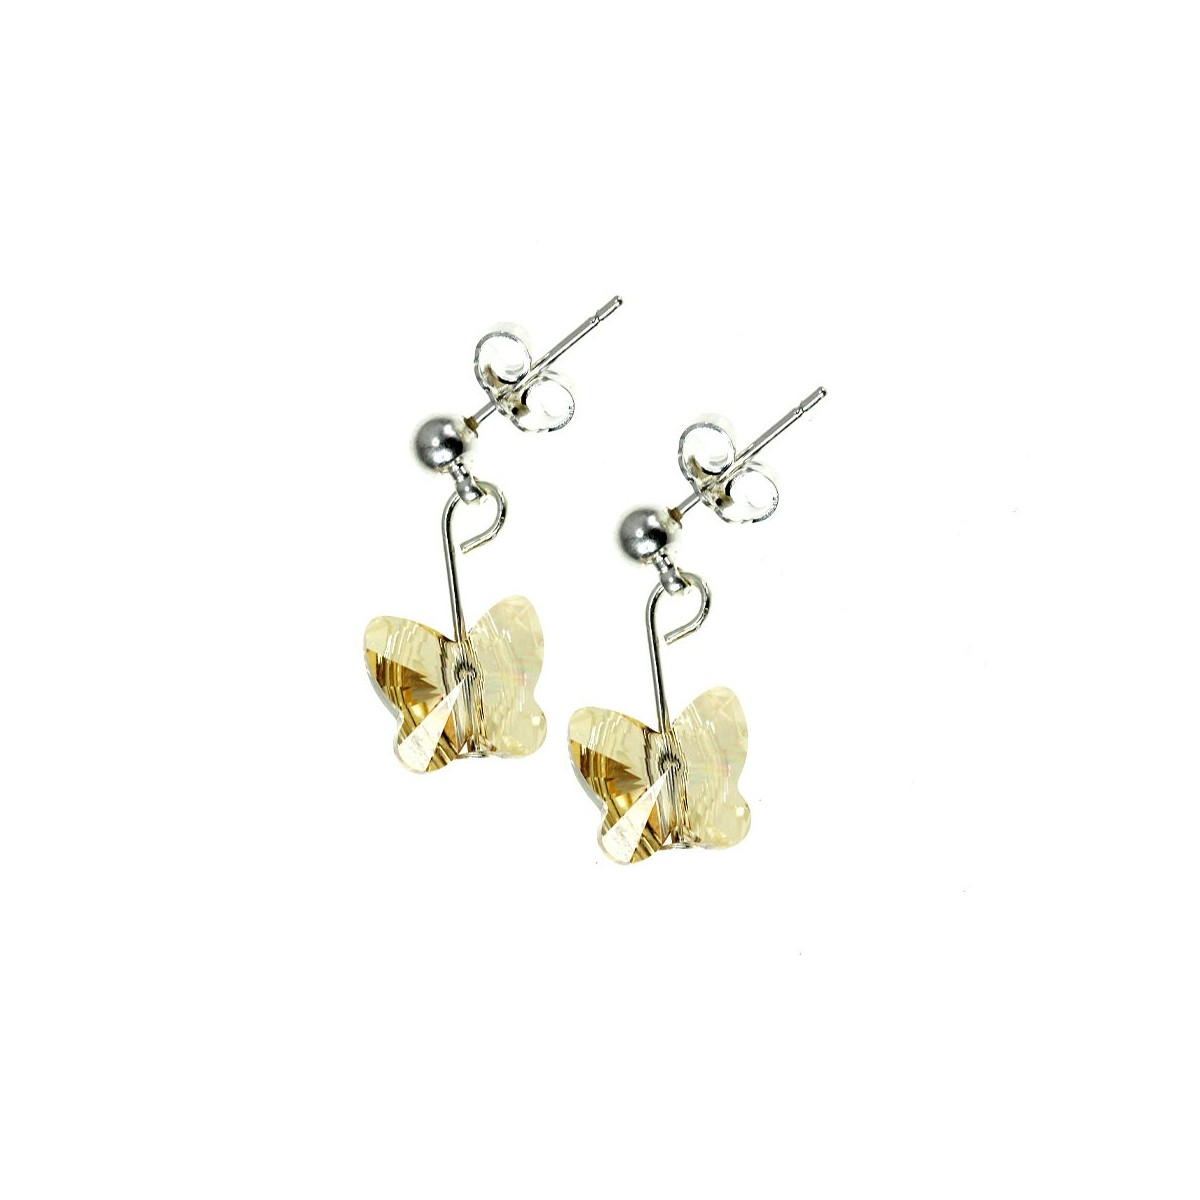 Boucles d'oreilles So Charm ornées d'un papillon golden made with crystal from Swarovski